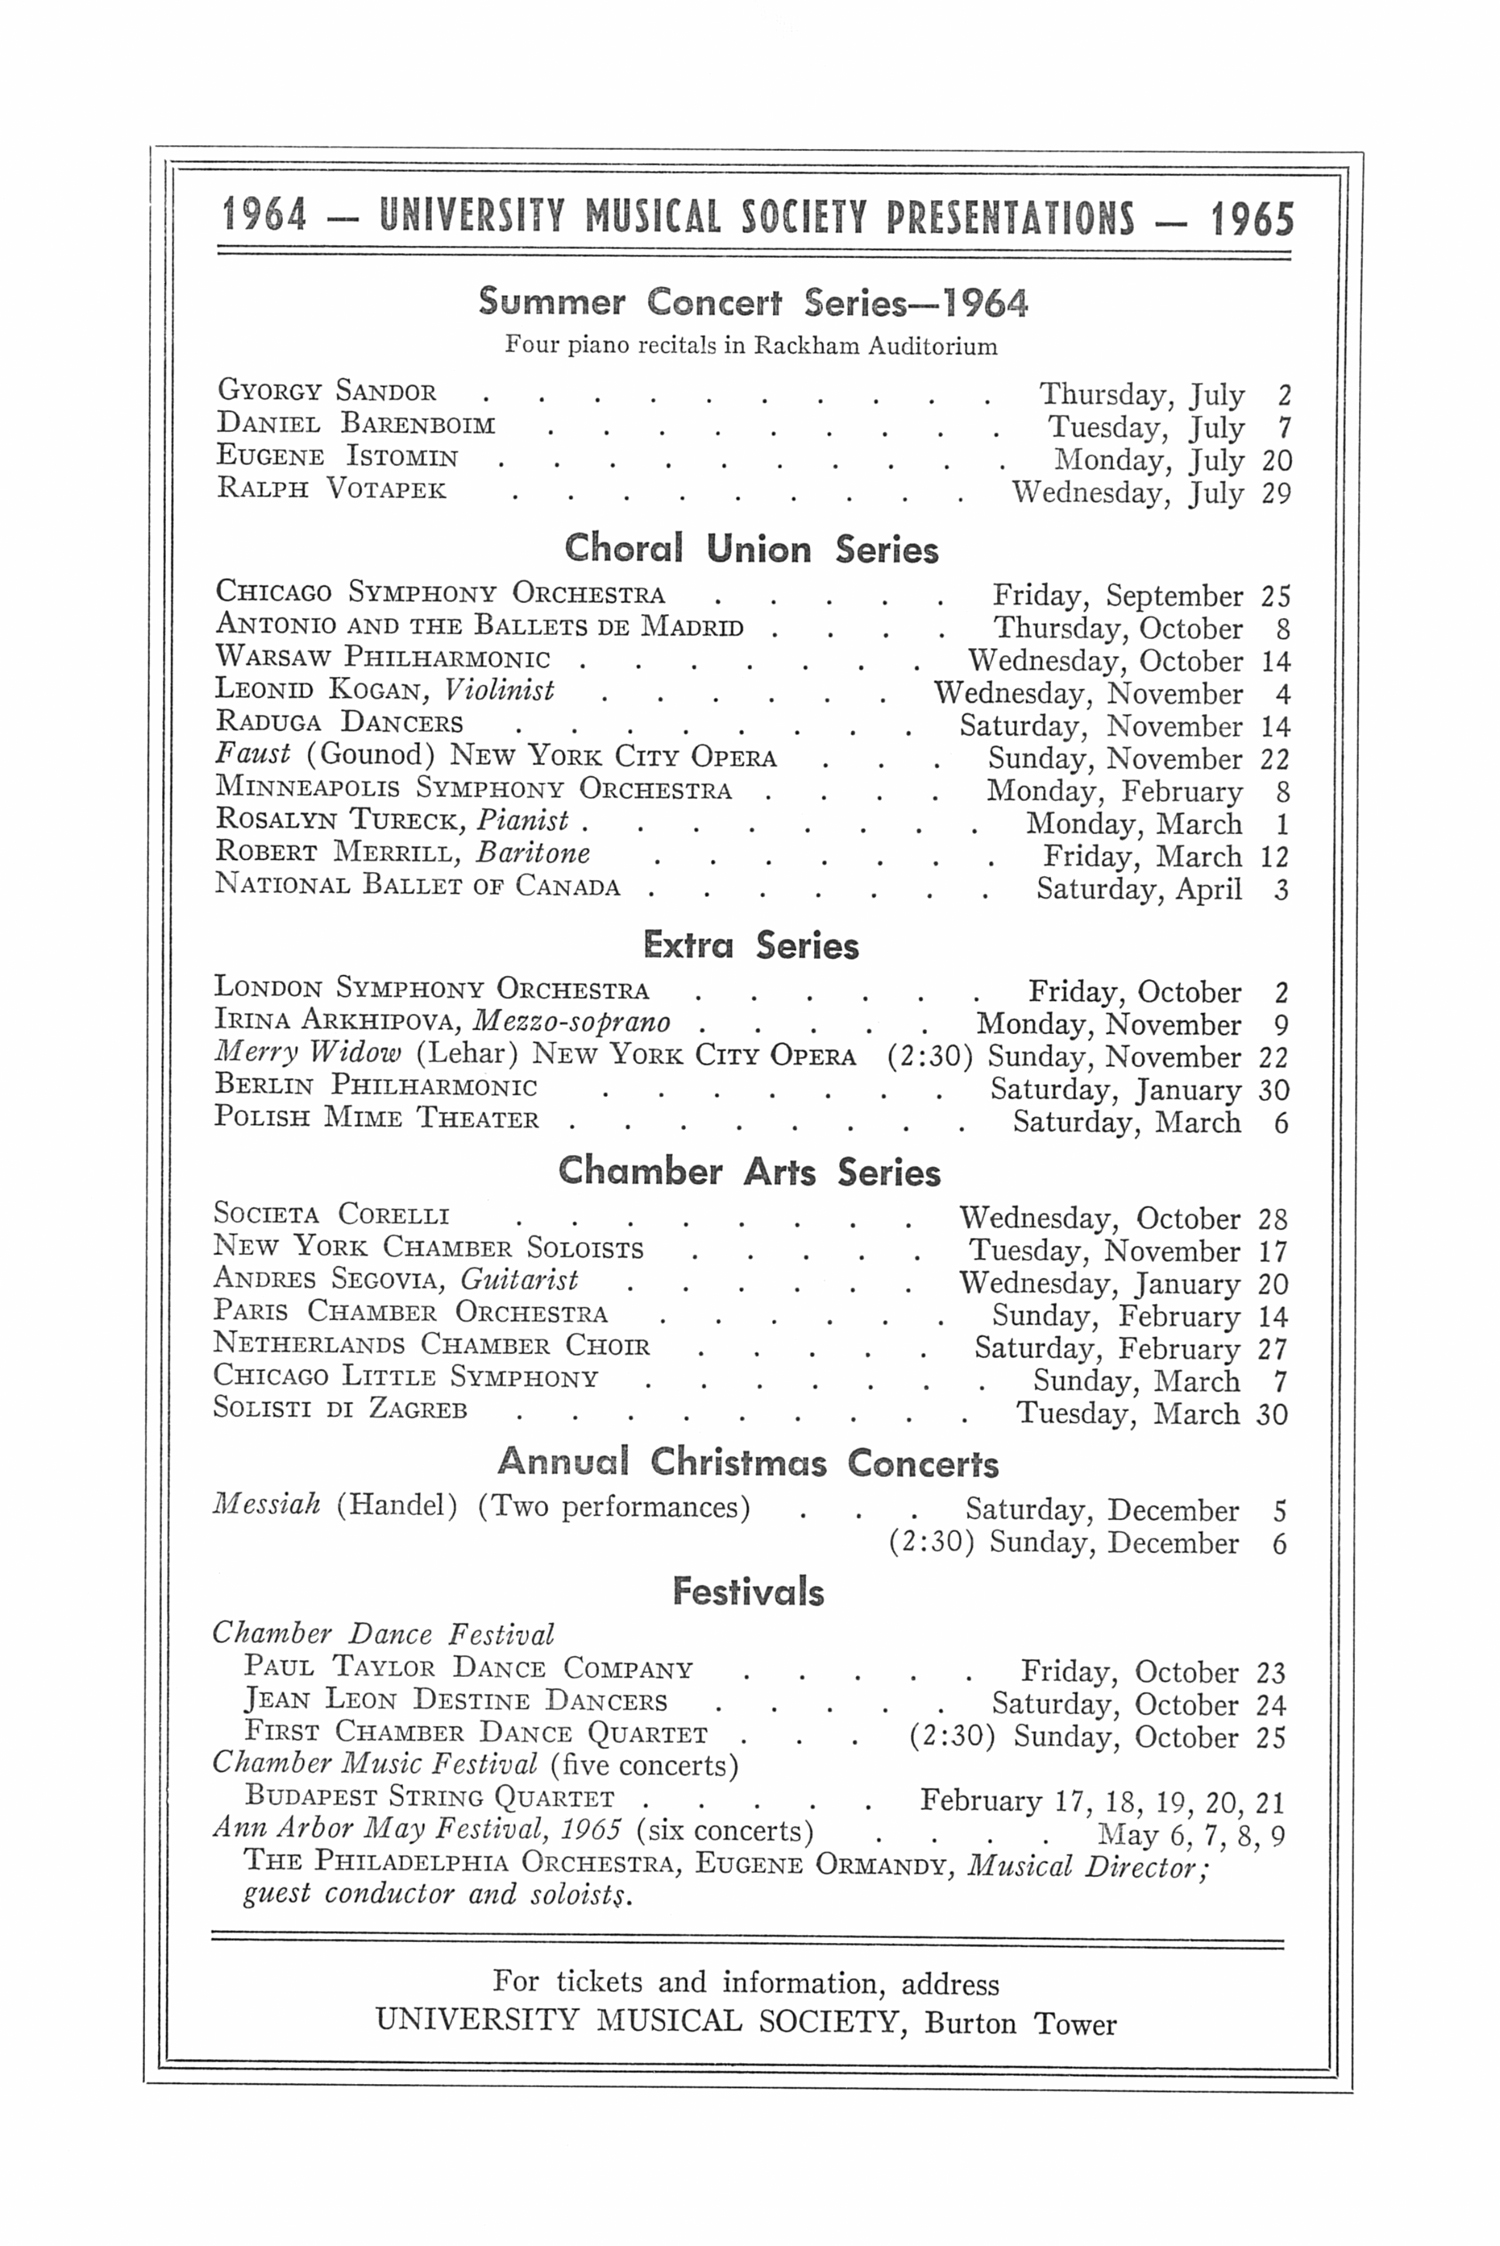 UMS Concert Program, April 30, 1964: Seventy-first Annual May Festival -- The Philadelphia Orchestra image